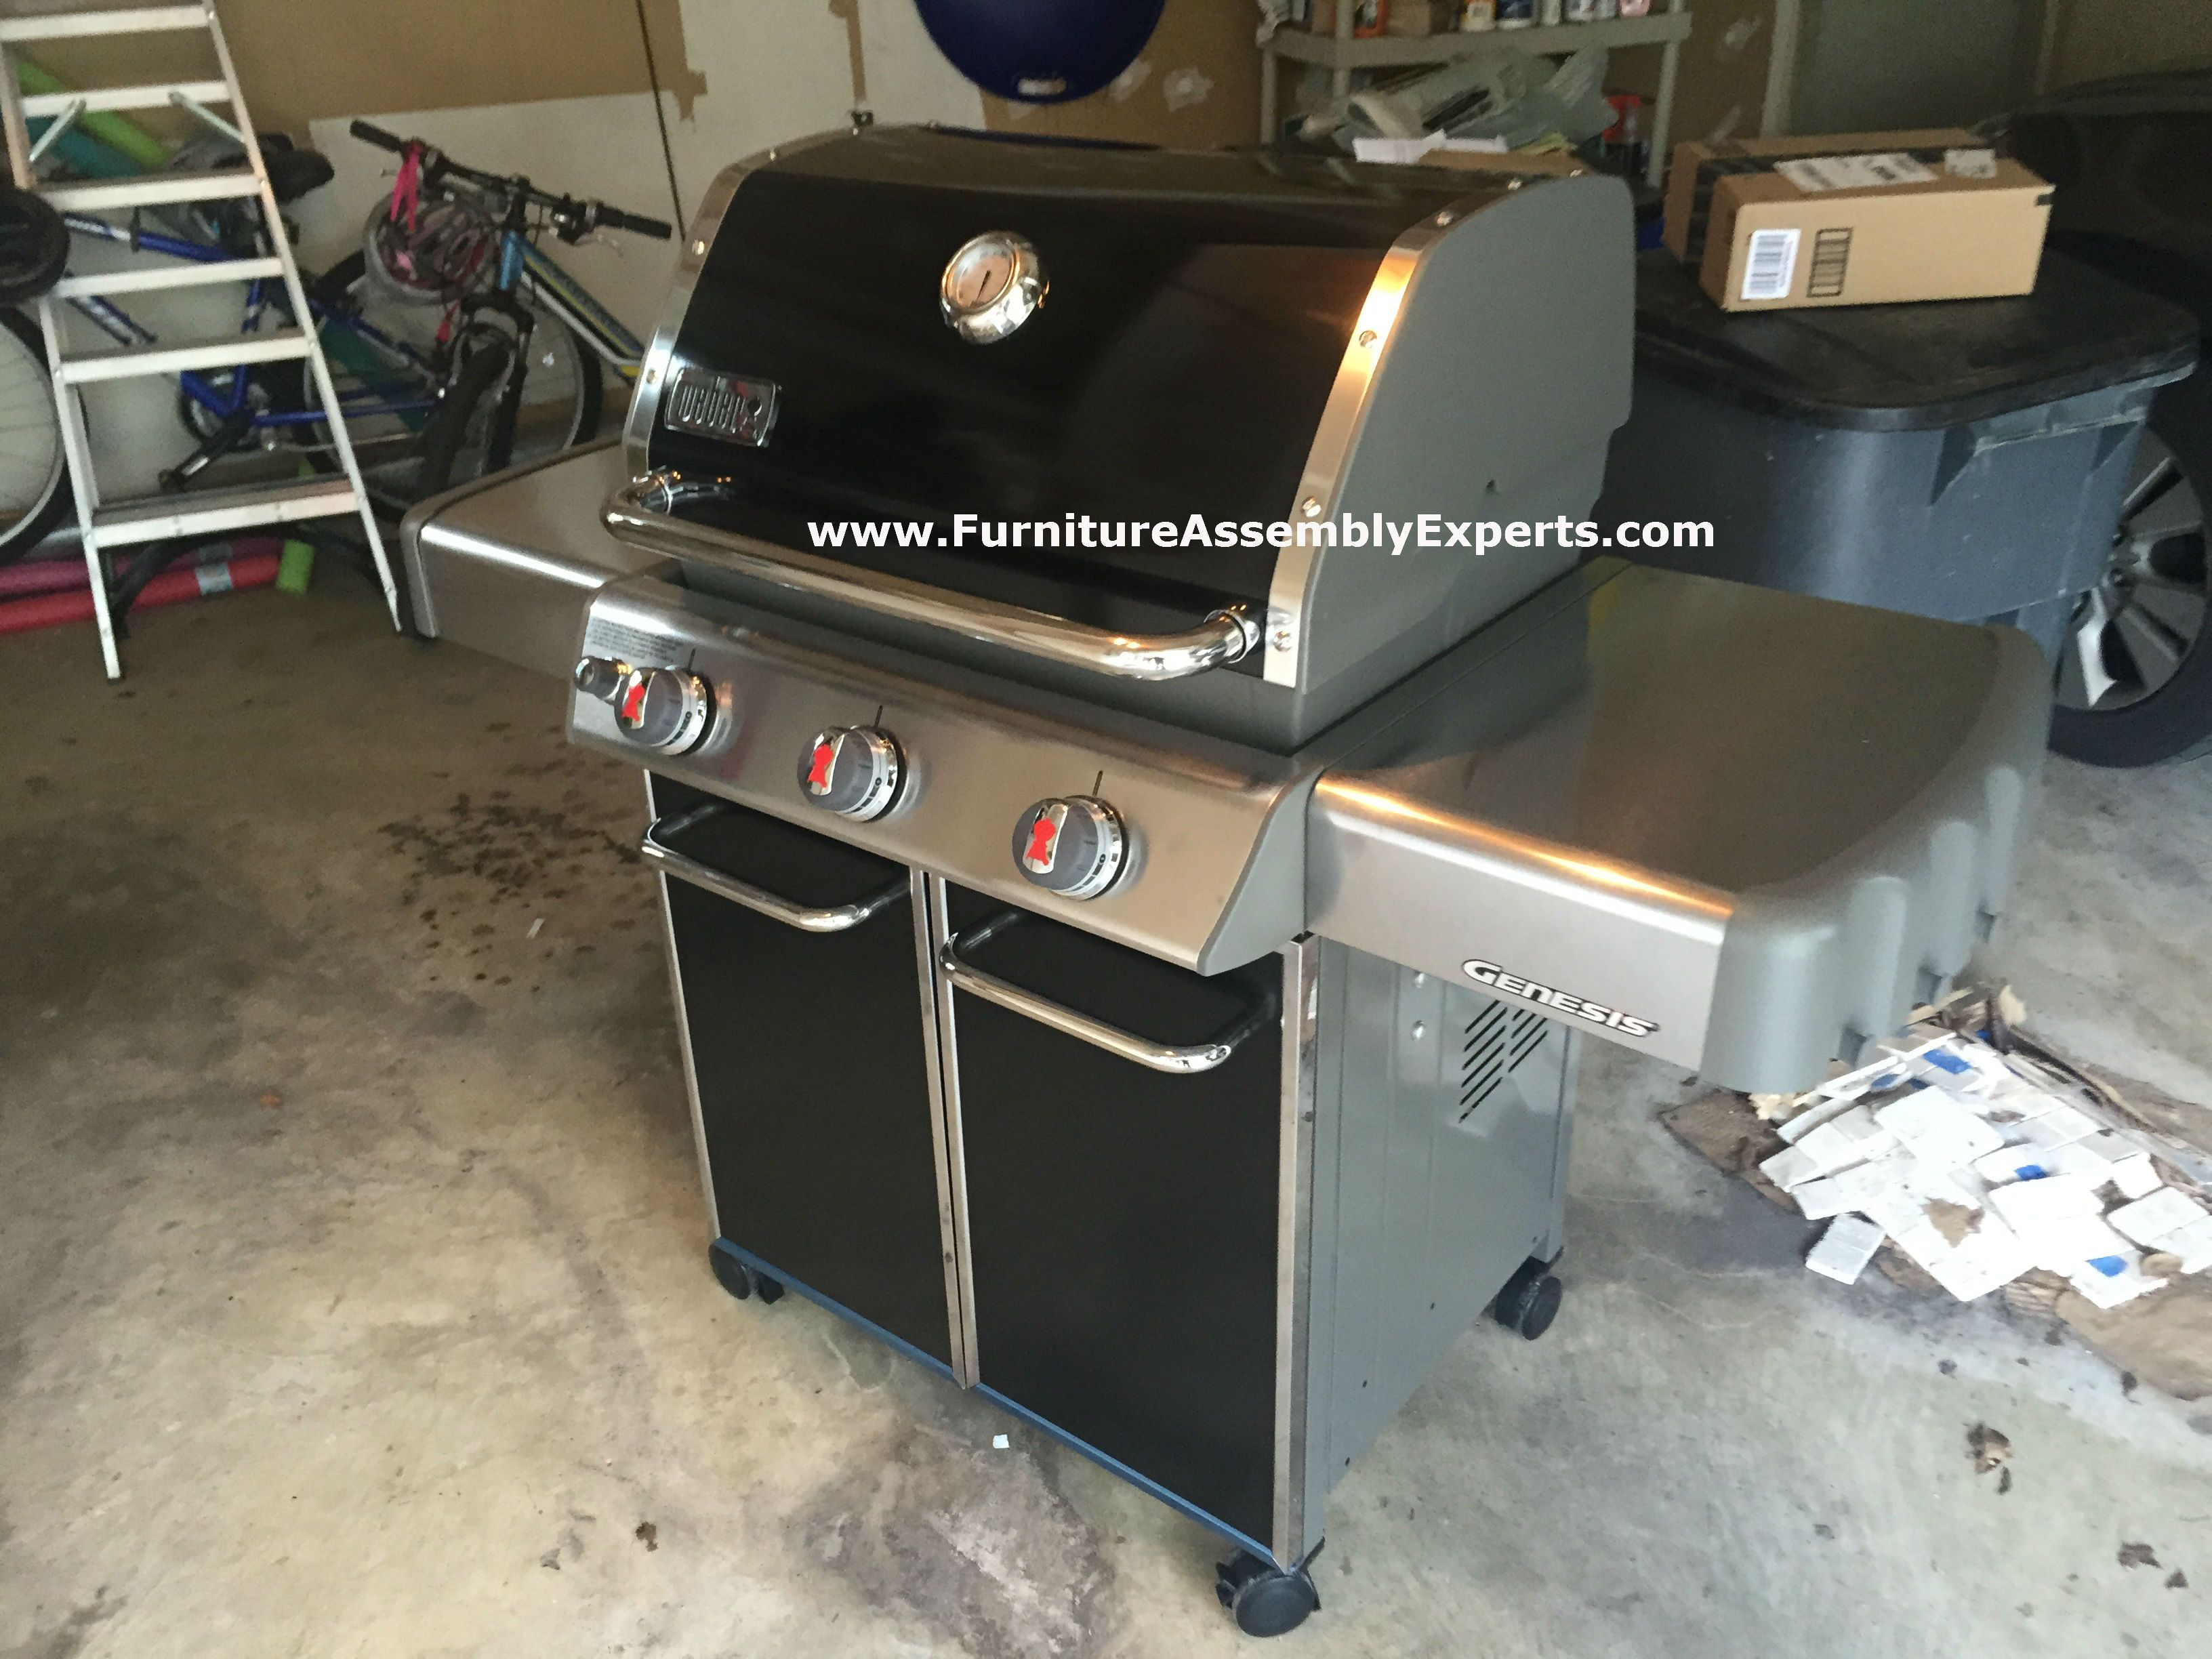 weber genesis gas grill from amazon assembled for a